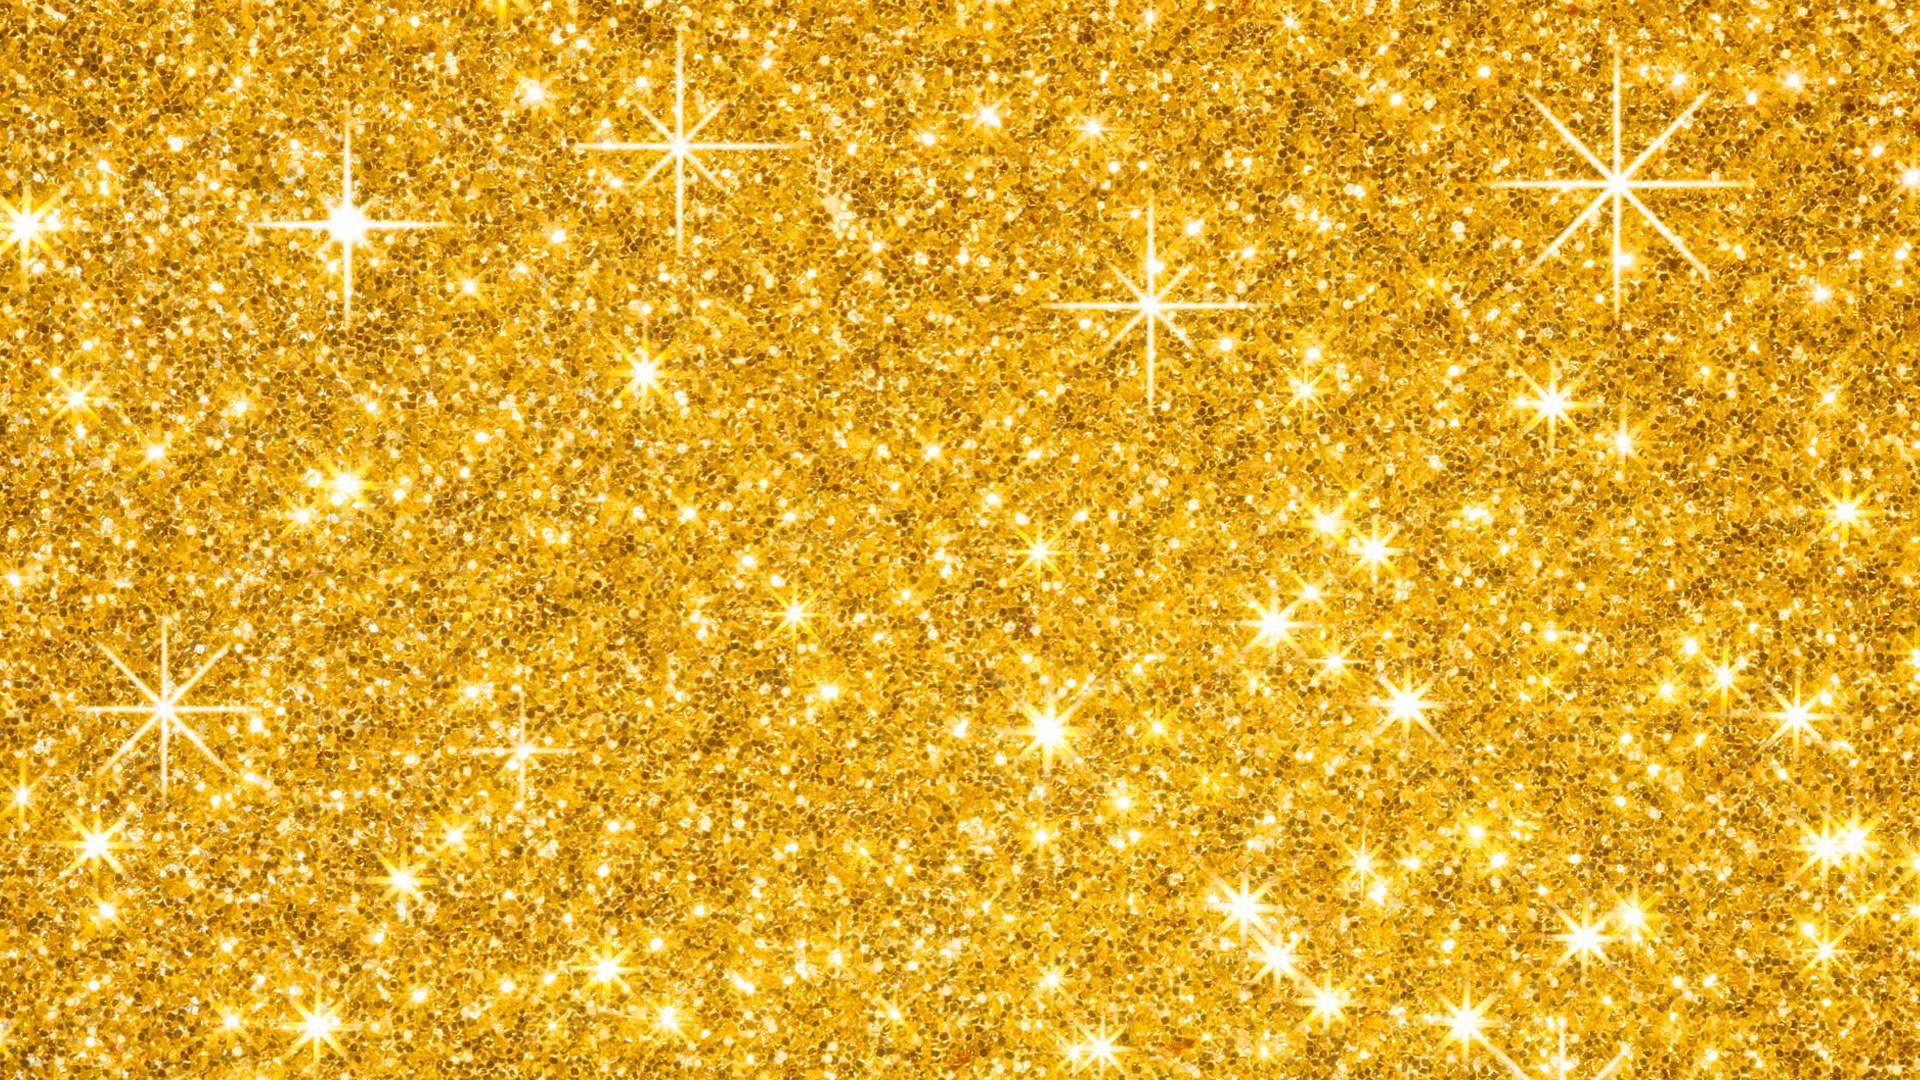 Gold Glitter Background Full HD Wallpaper And Image